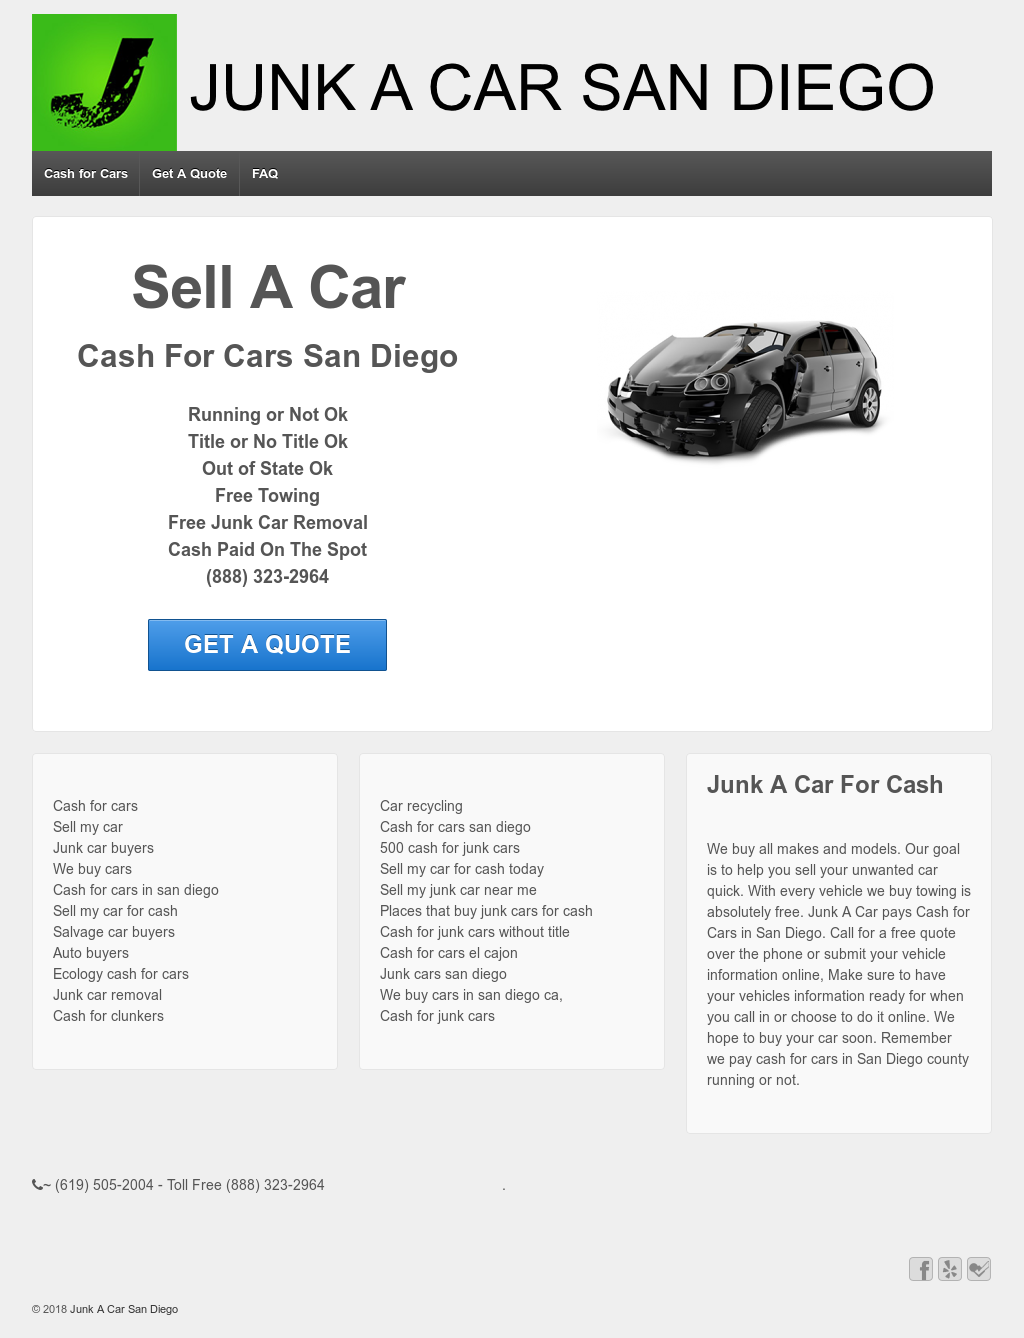 Junk A Car San Diego - We Pay Cash For Cars Competitors, Revenue and ...